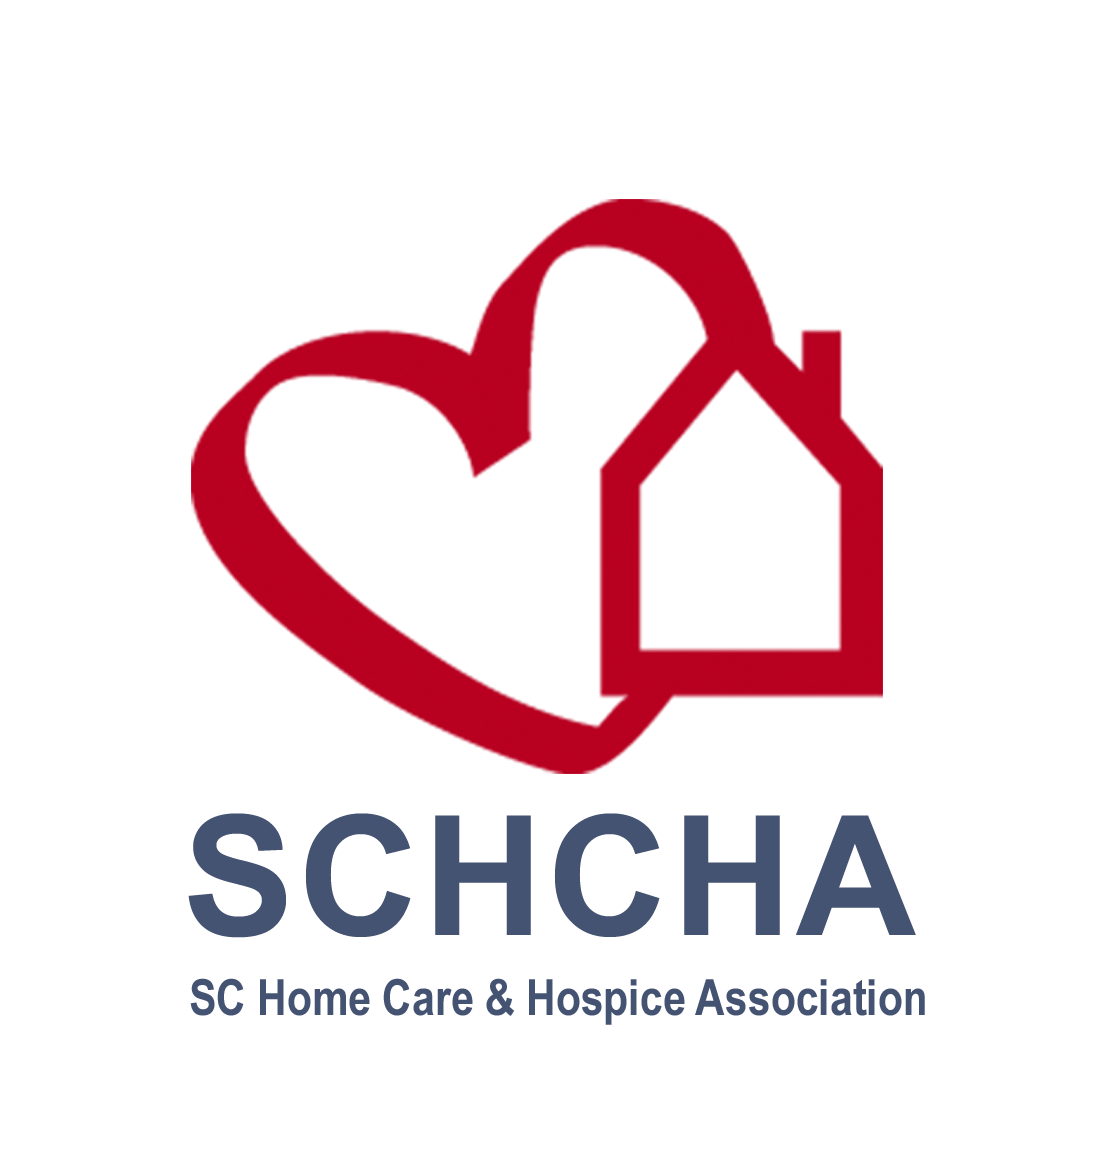 Schcha 2019 Annual Conference Call For Proposalsdecember 9